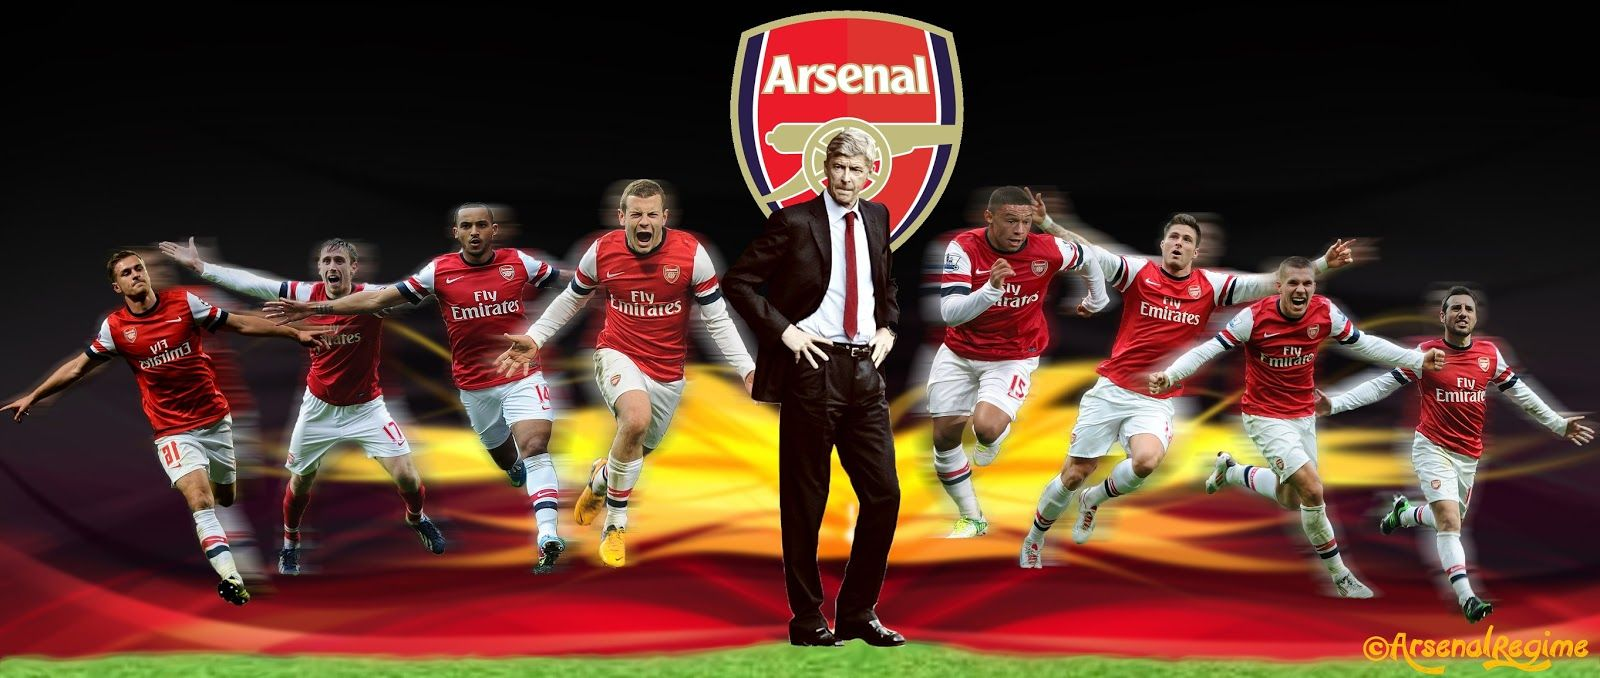 Arsenal Best Wallpapers